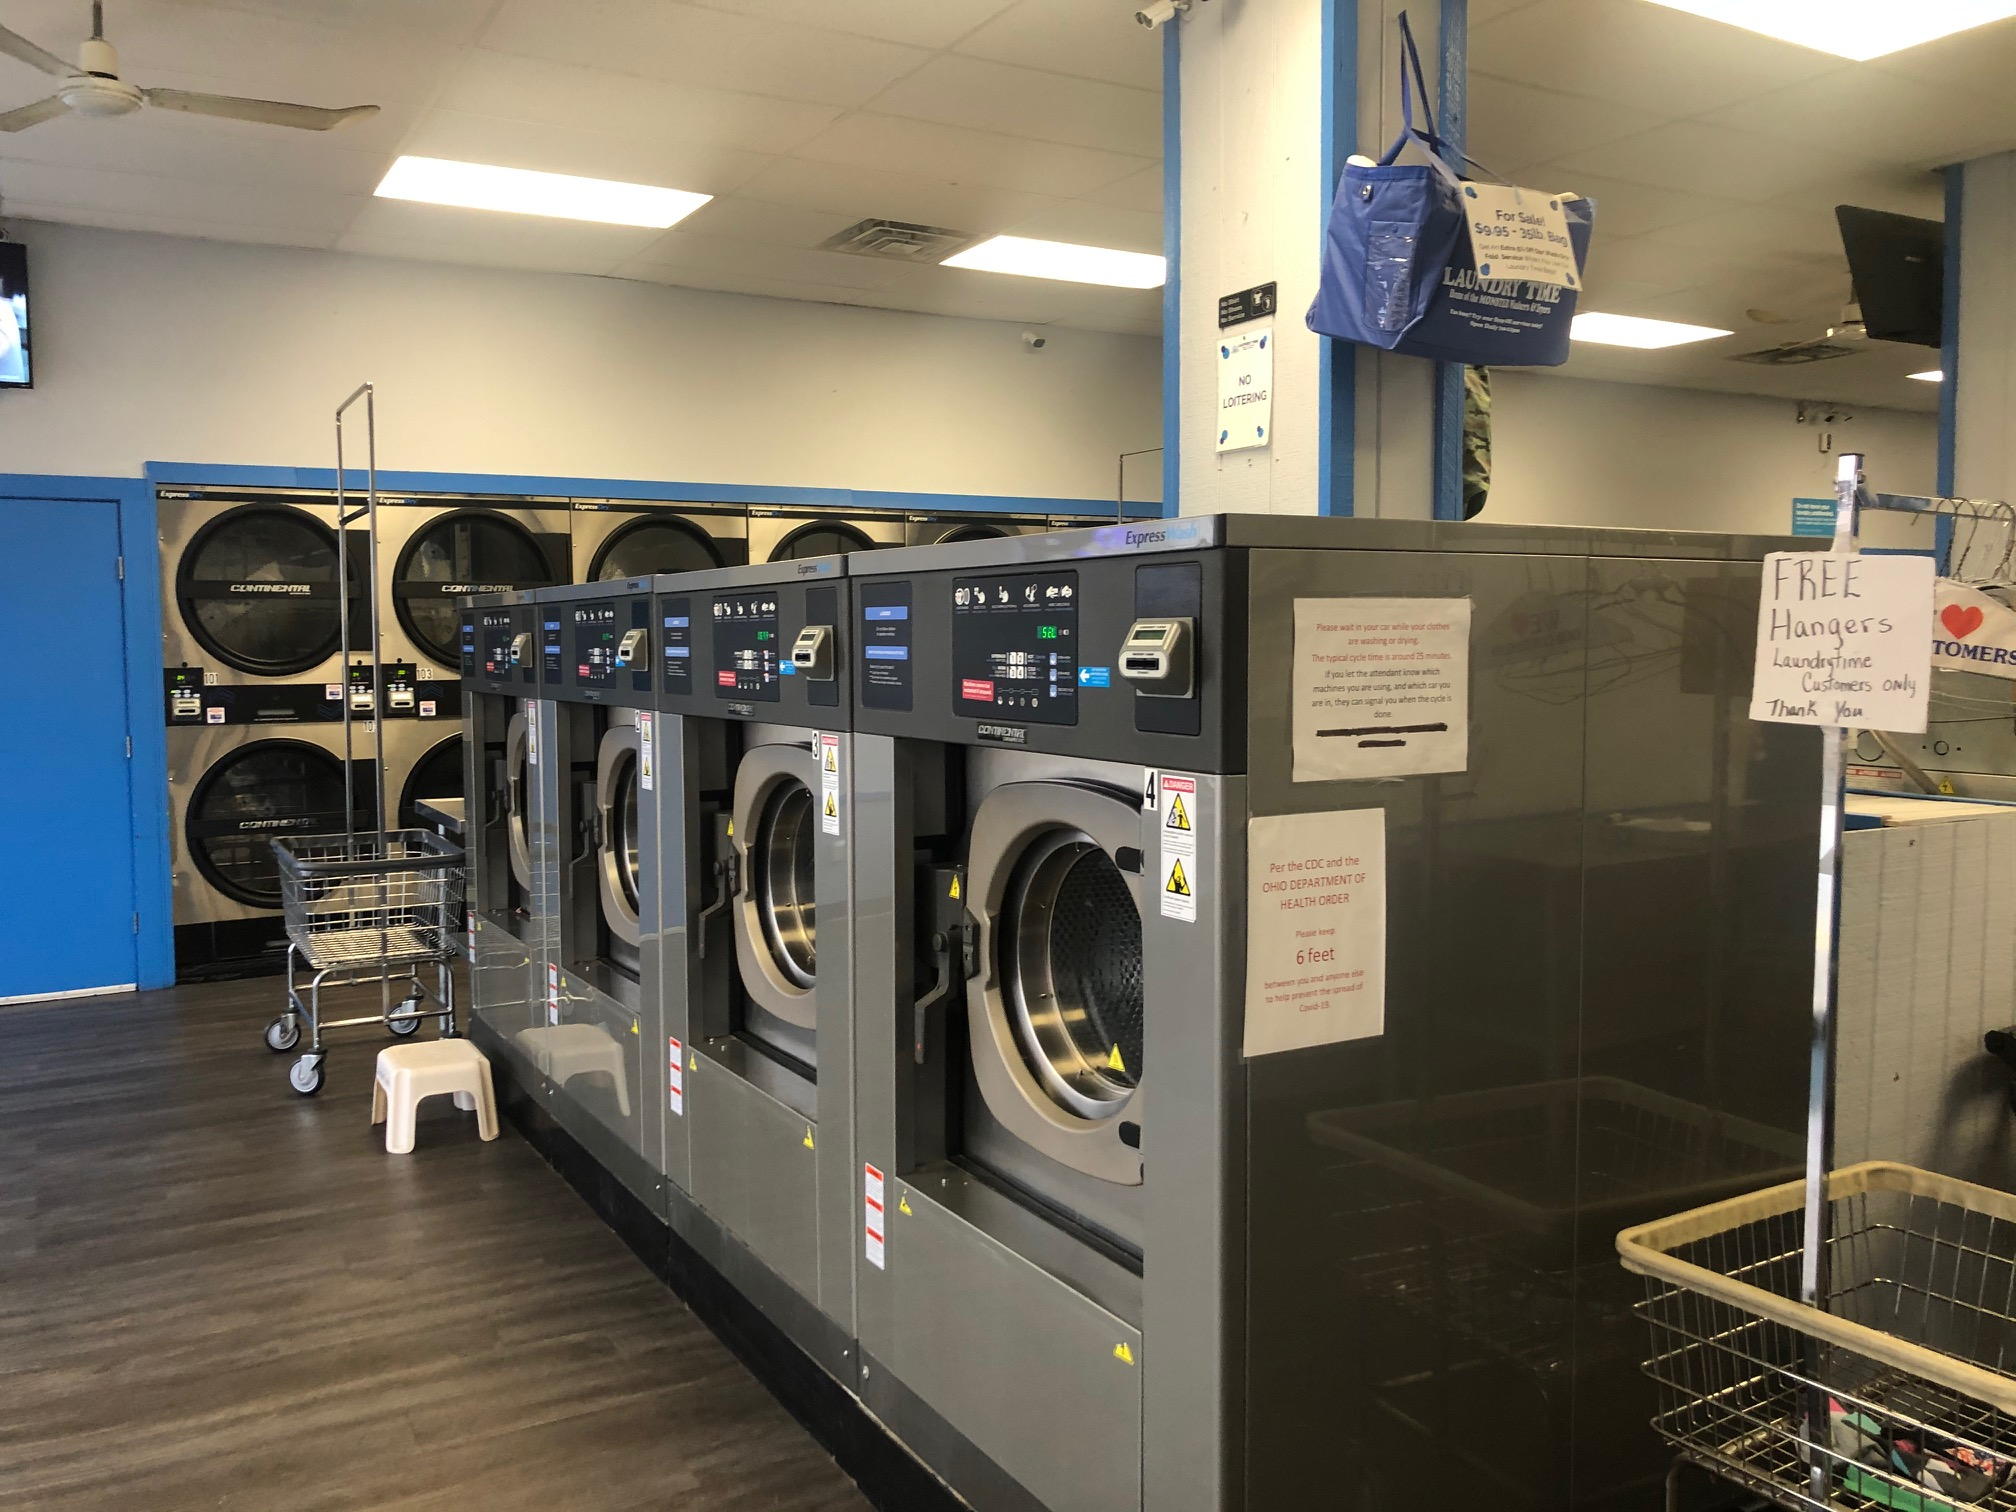 Laundry Time Barberton - Top Rated Laundromat